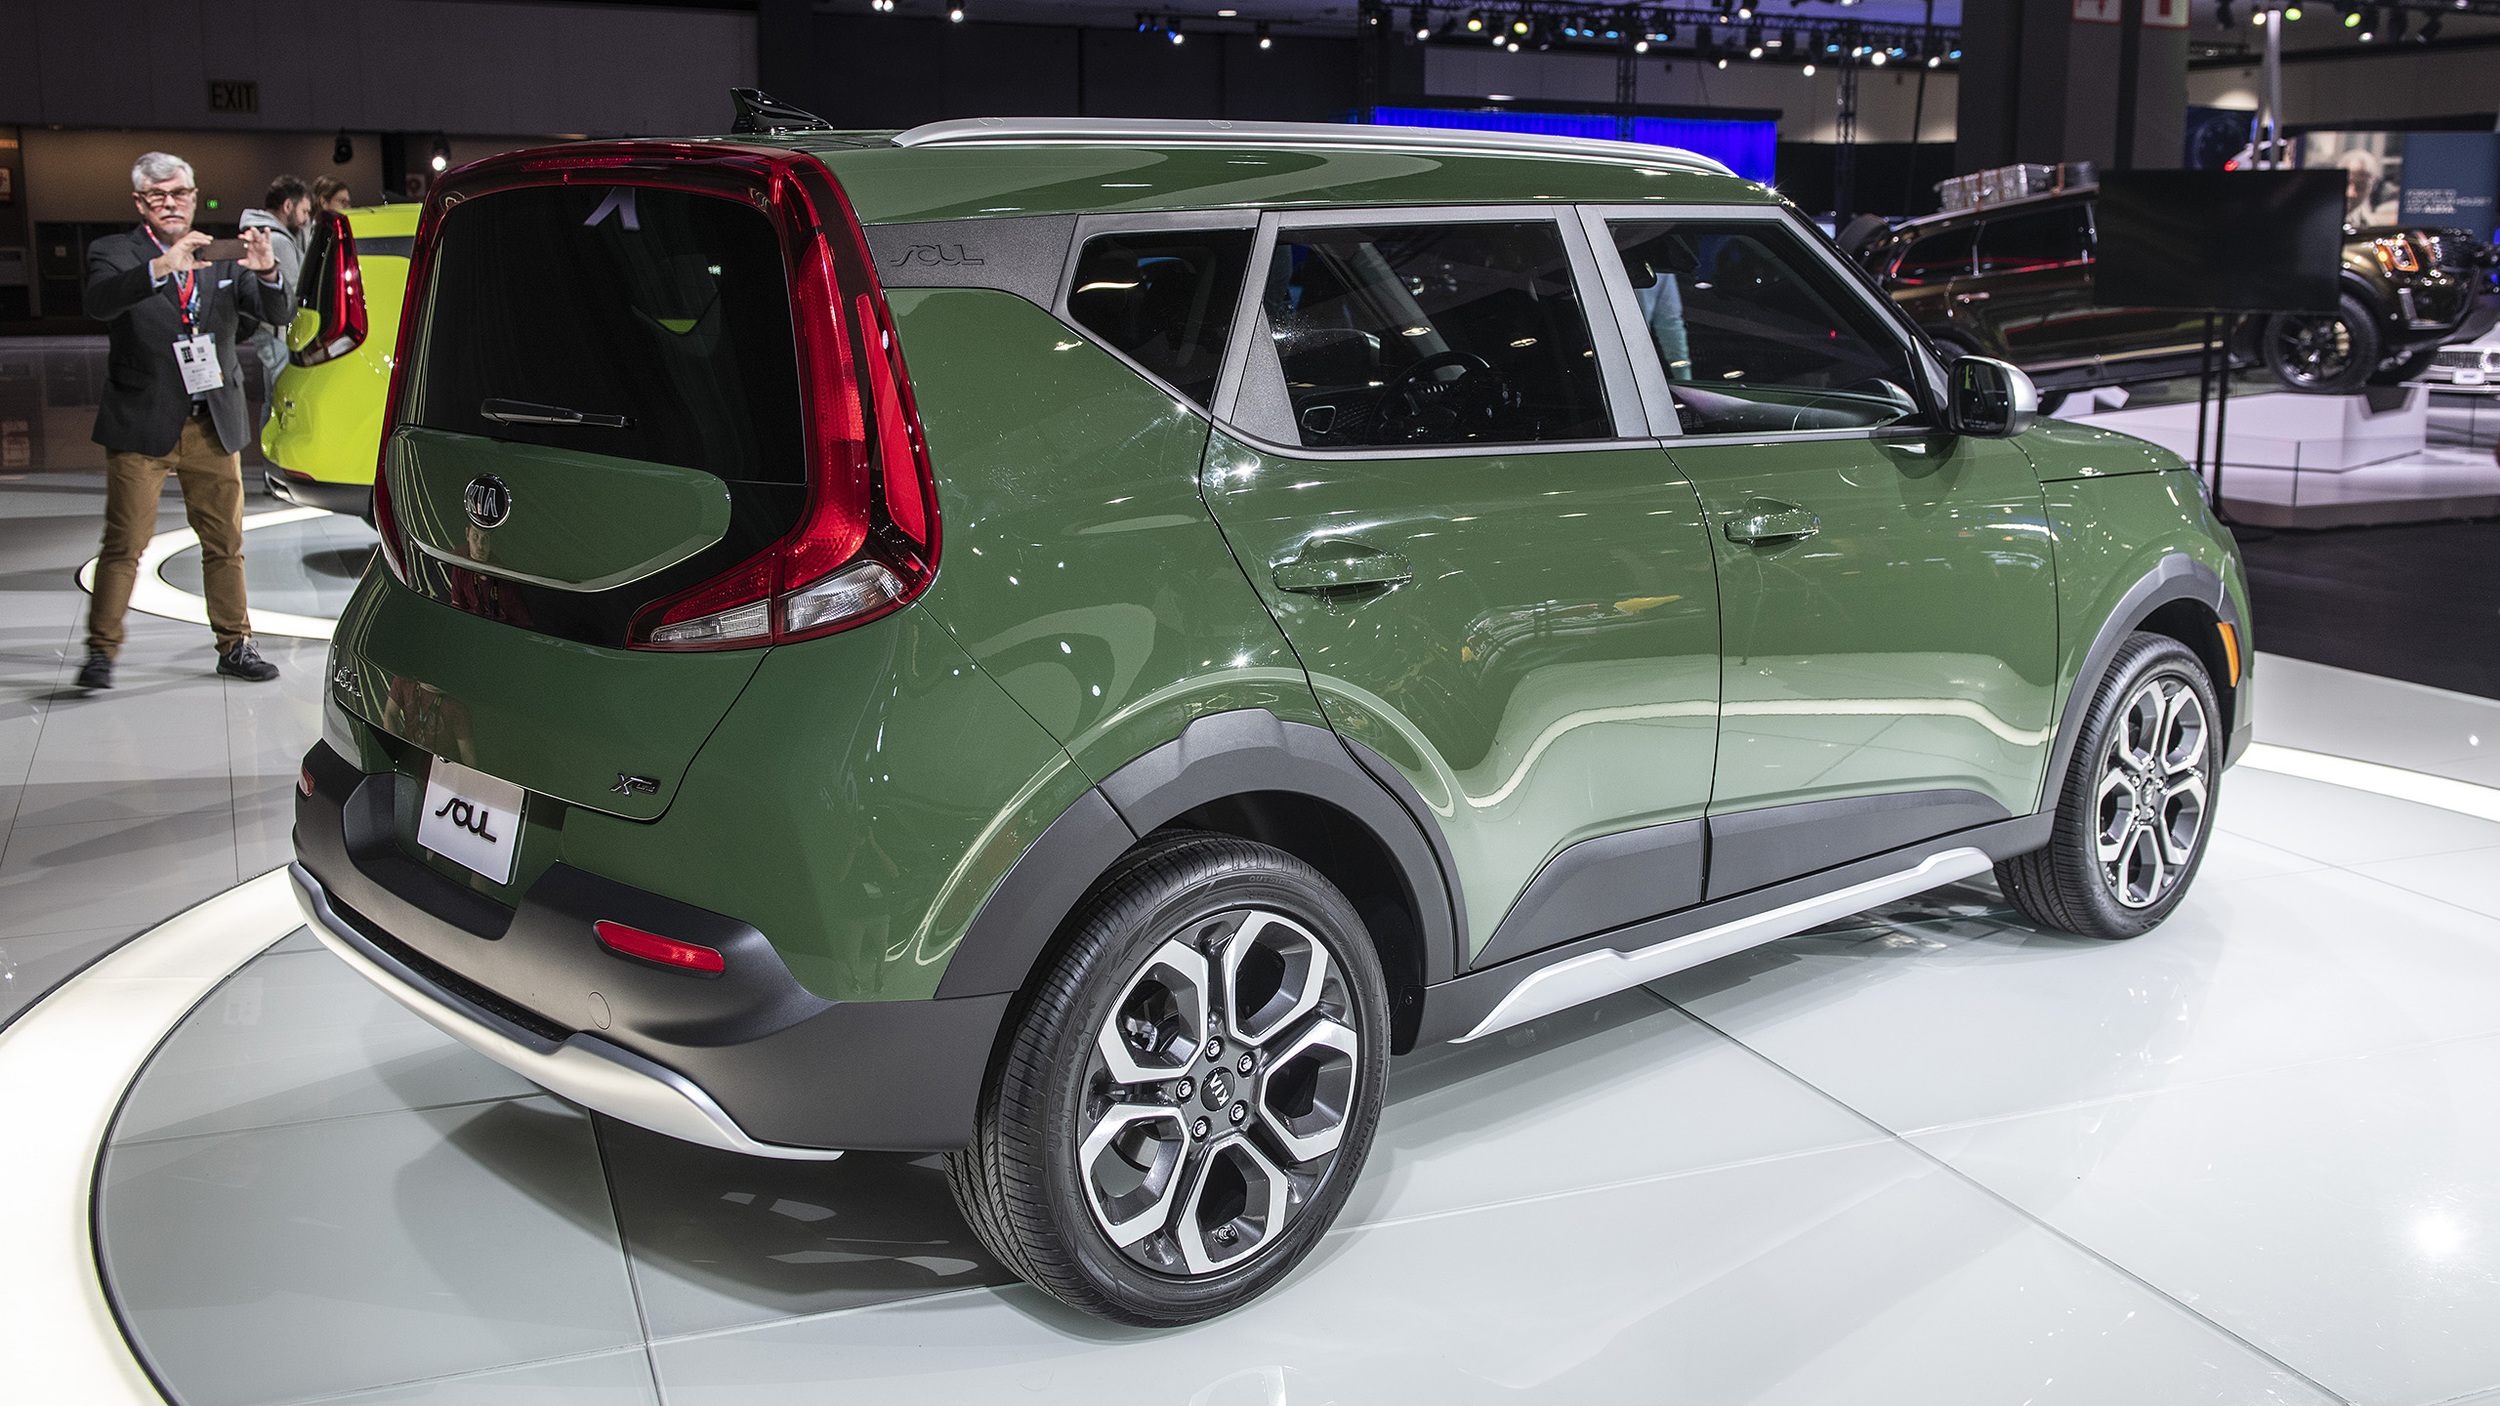 Kia Soul Commercial >> 2020 Kia Soul pricing announced, starts at $18,485 | Autoblog